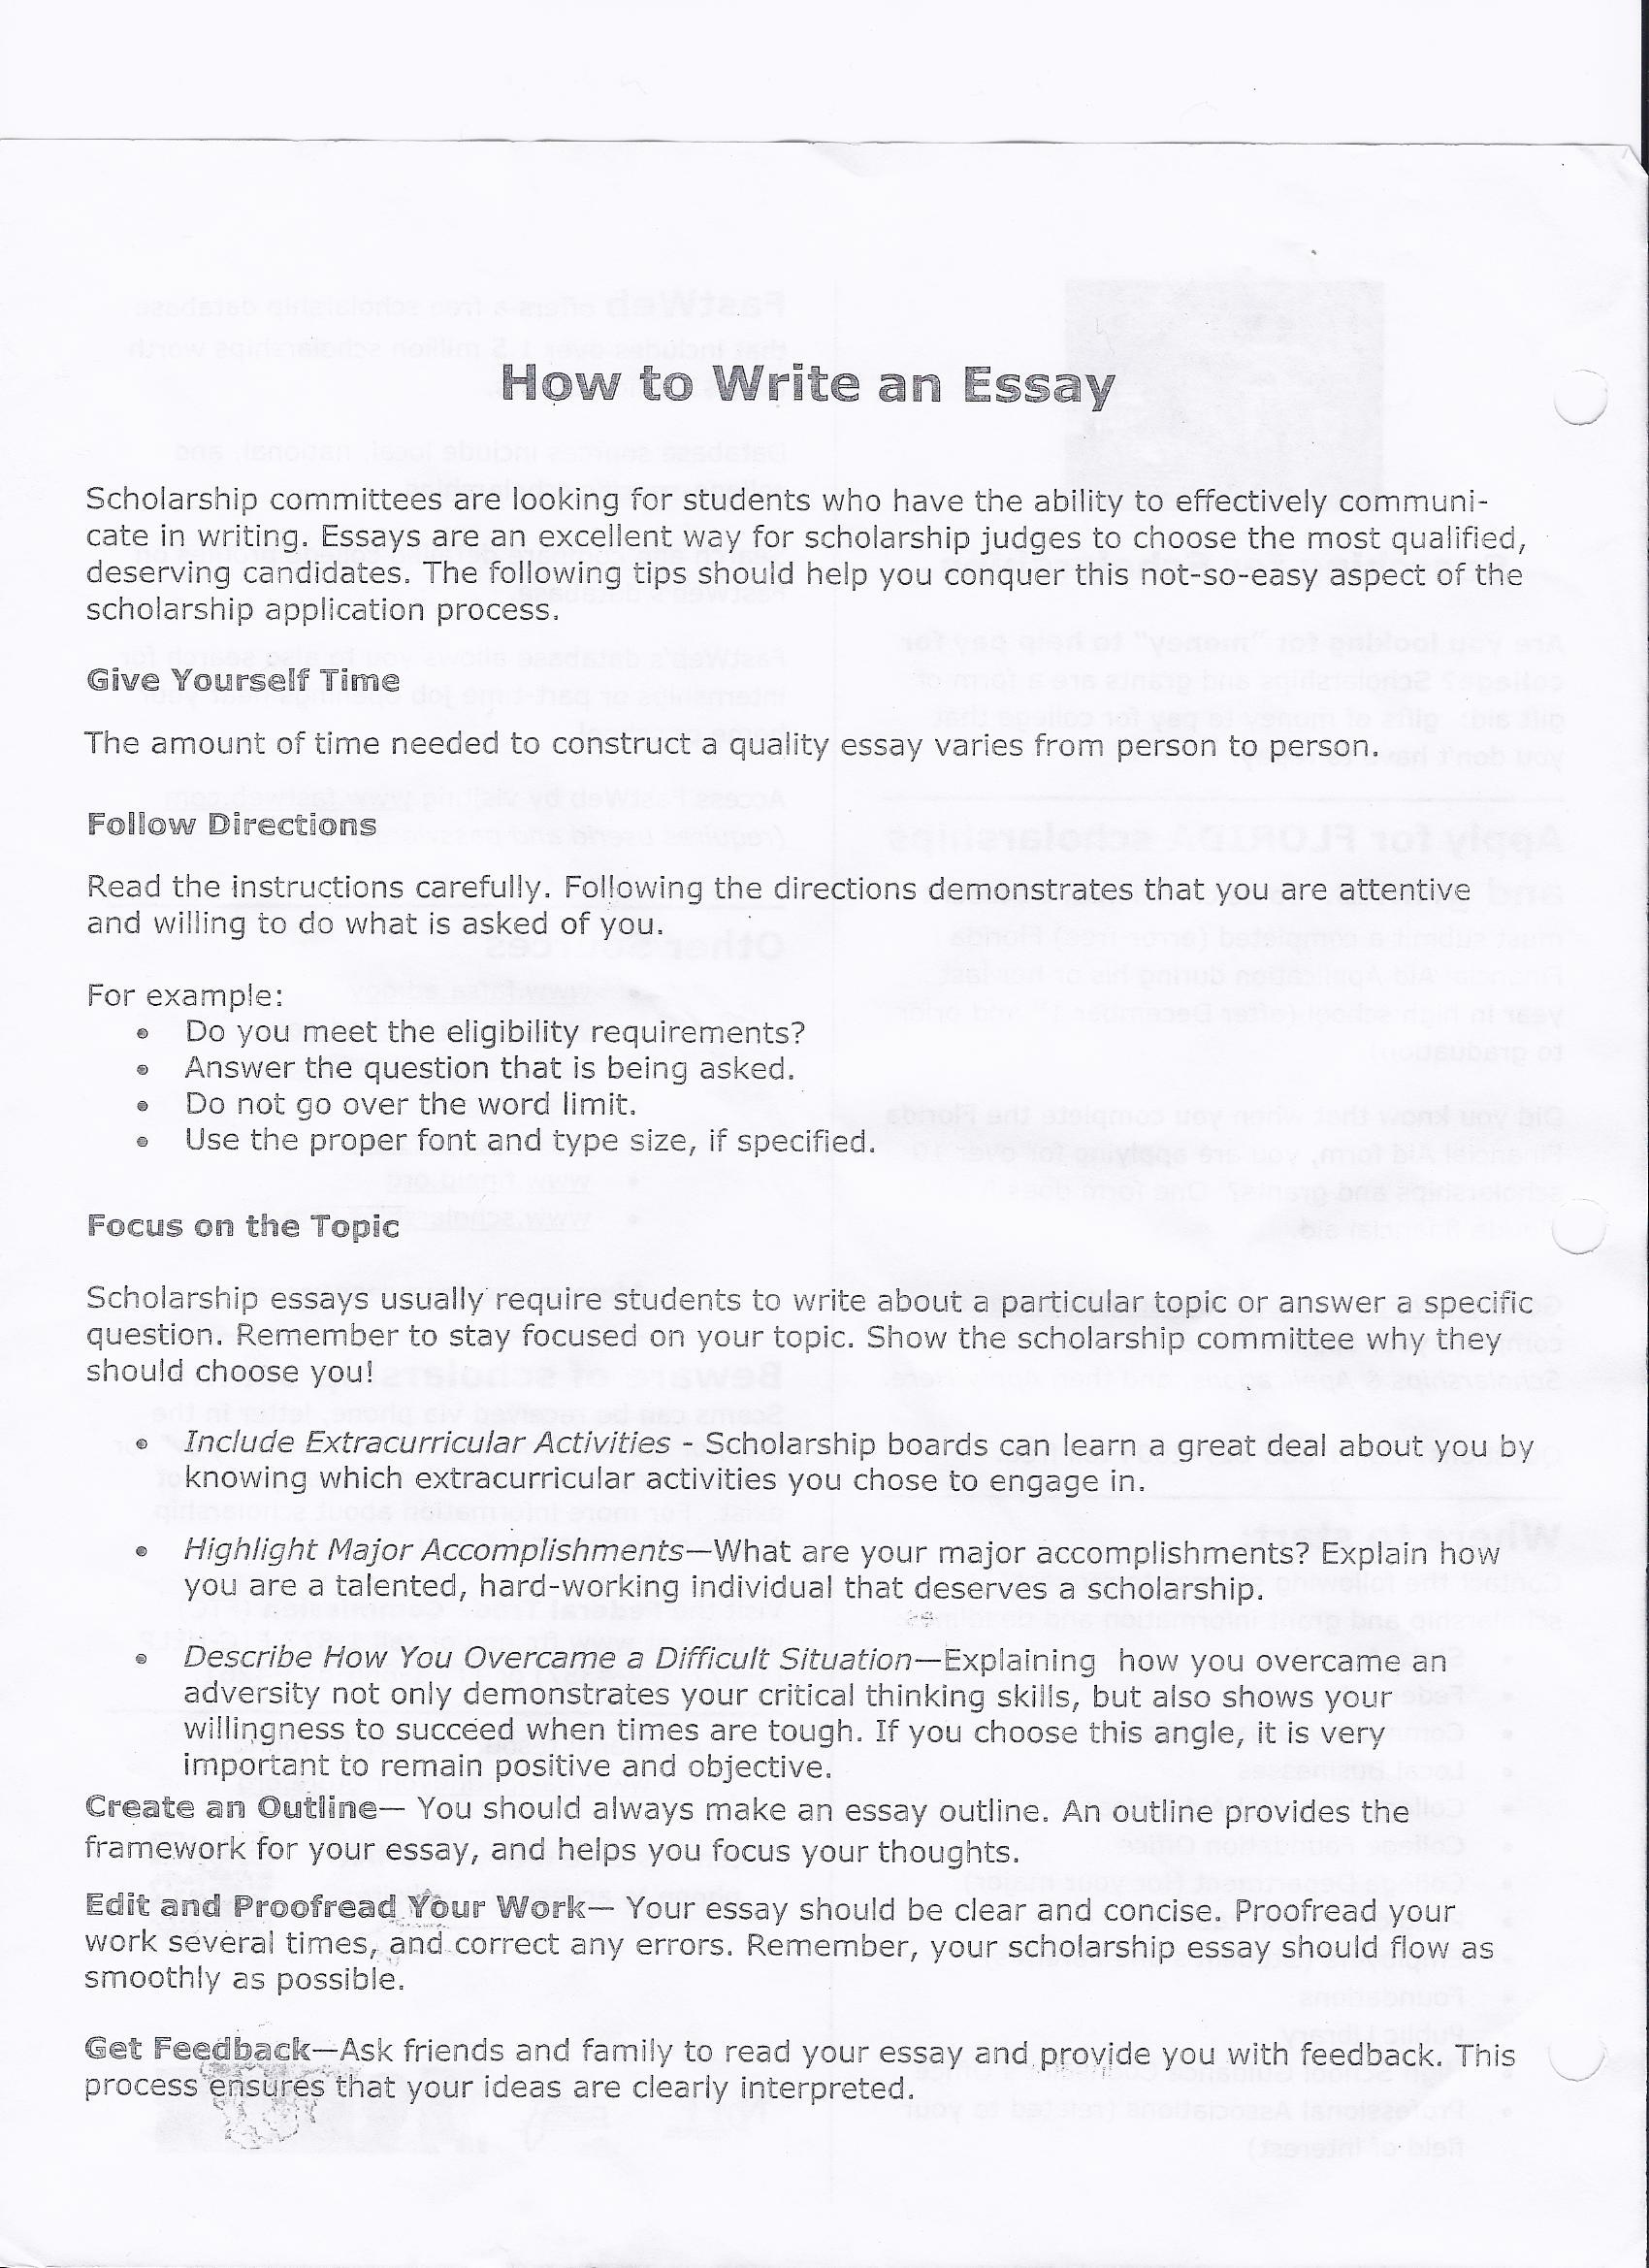 Music To Write Essays To High School Essay Composing Assist Essaypaycom Osama Bin Laden Essay also Essay About Our School High School Essay Composing Assist Essaypaycom      Eradication Of Child Labour Essay